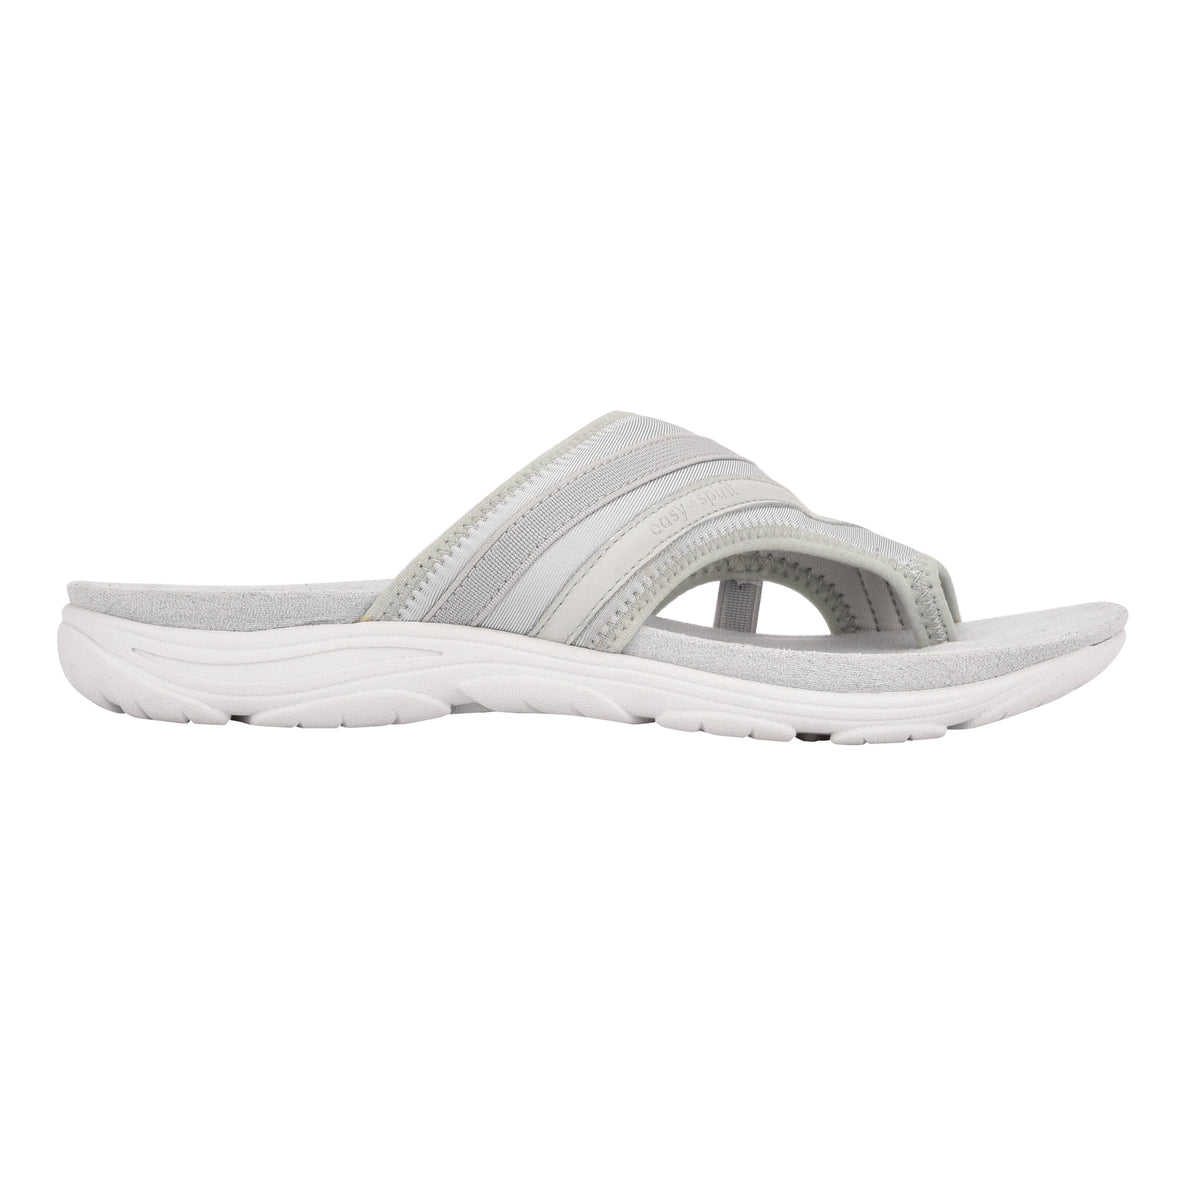 lola-slip-on-sandals-in-gray